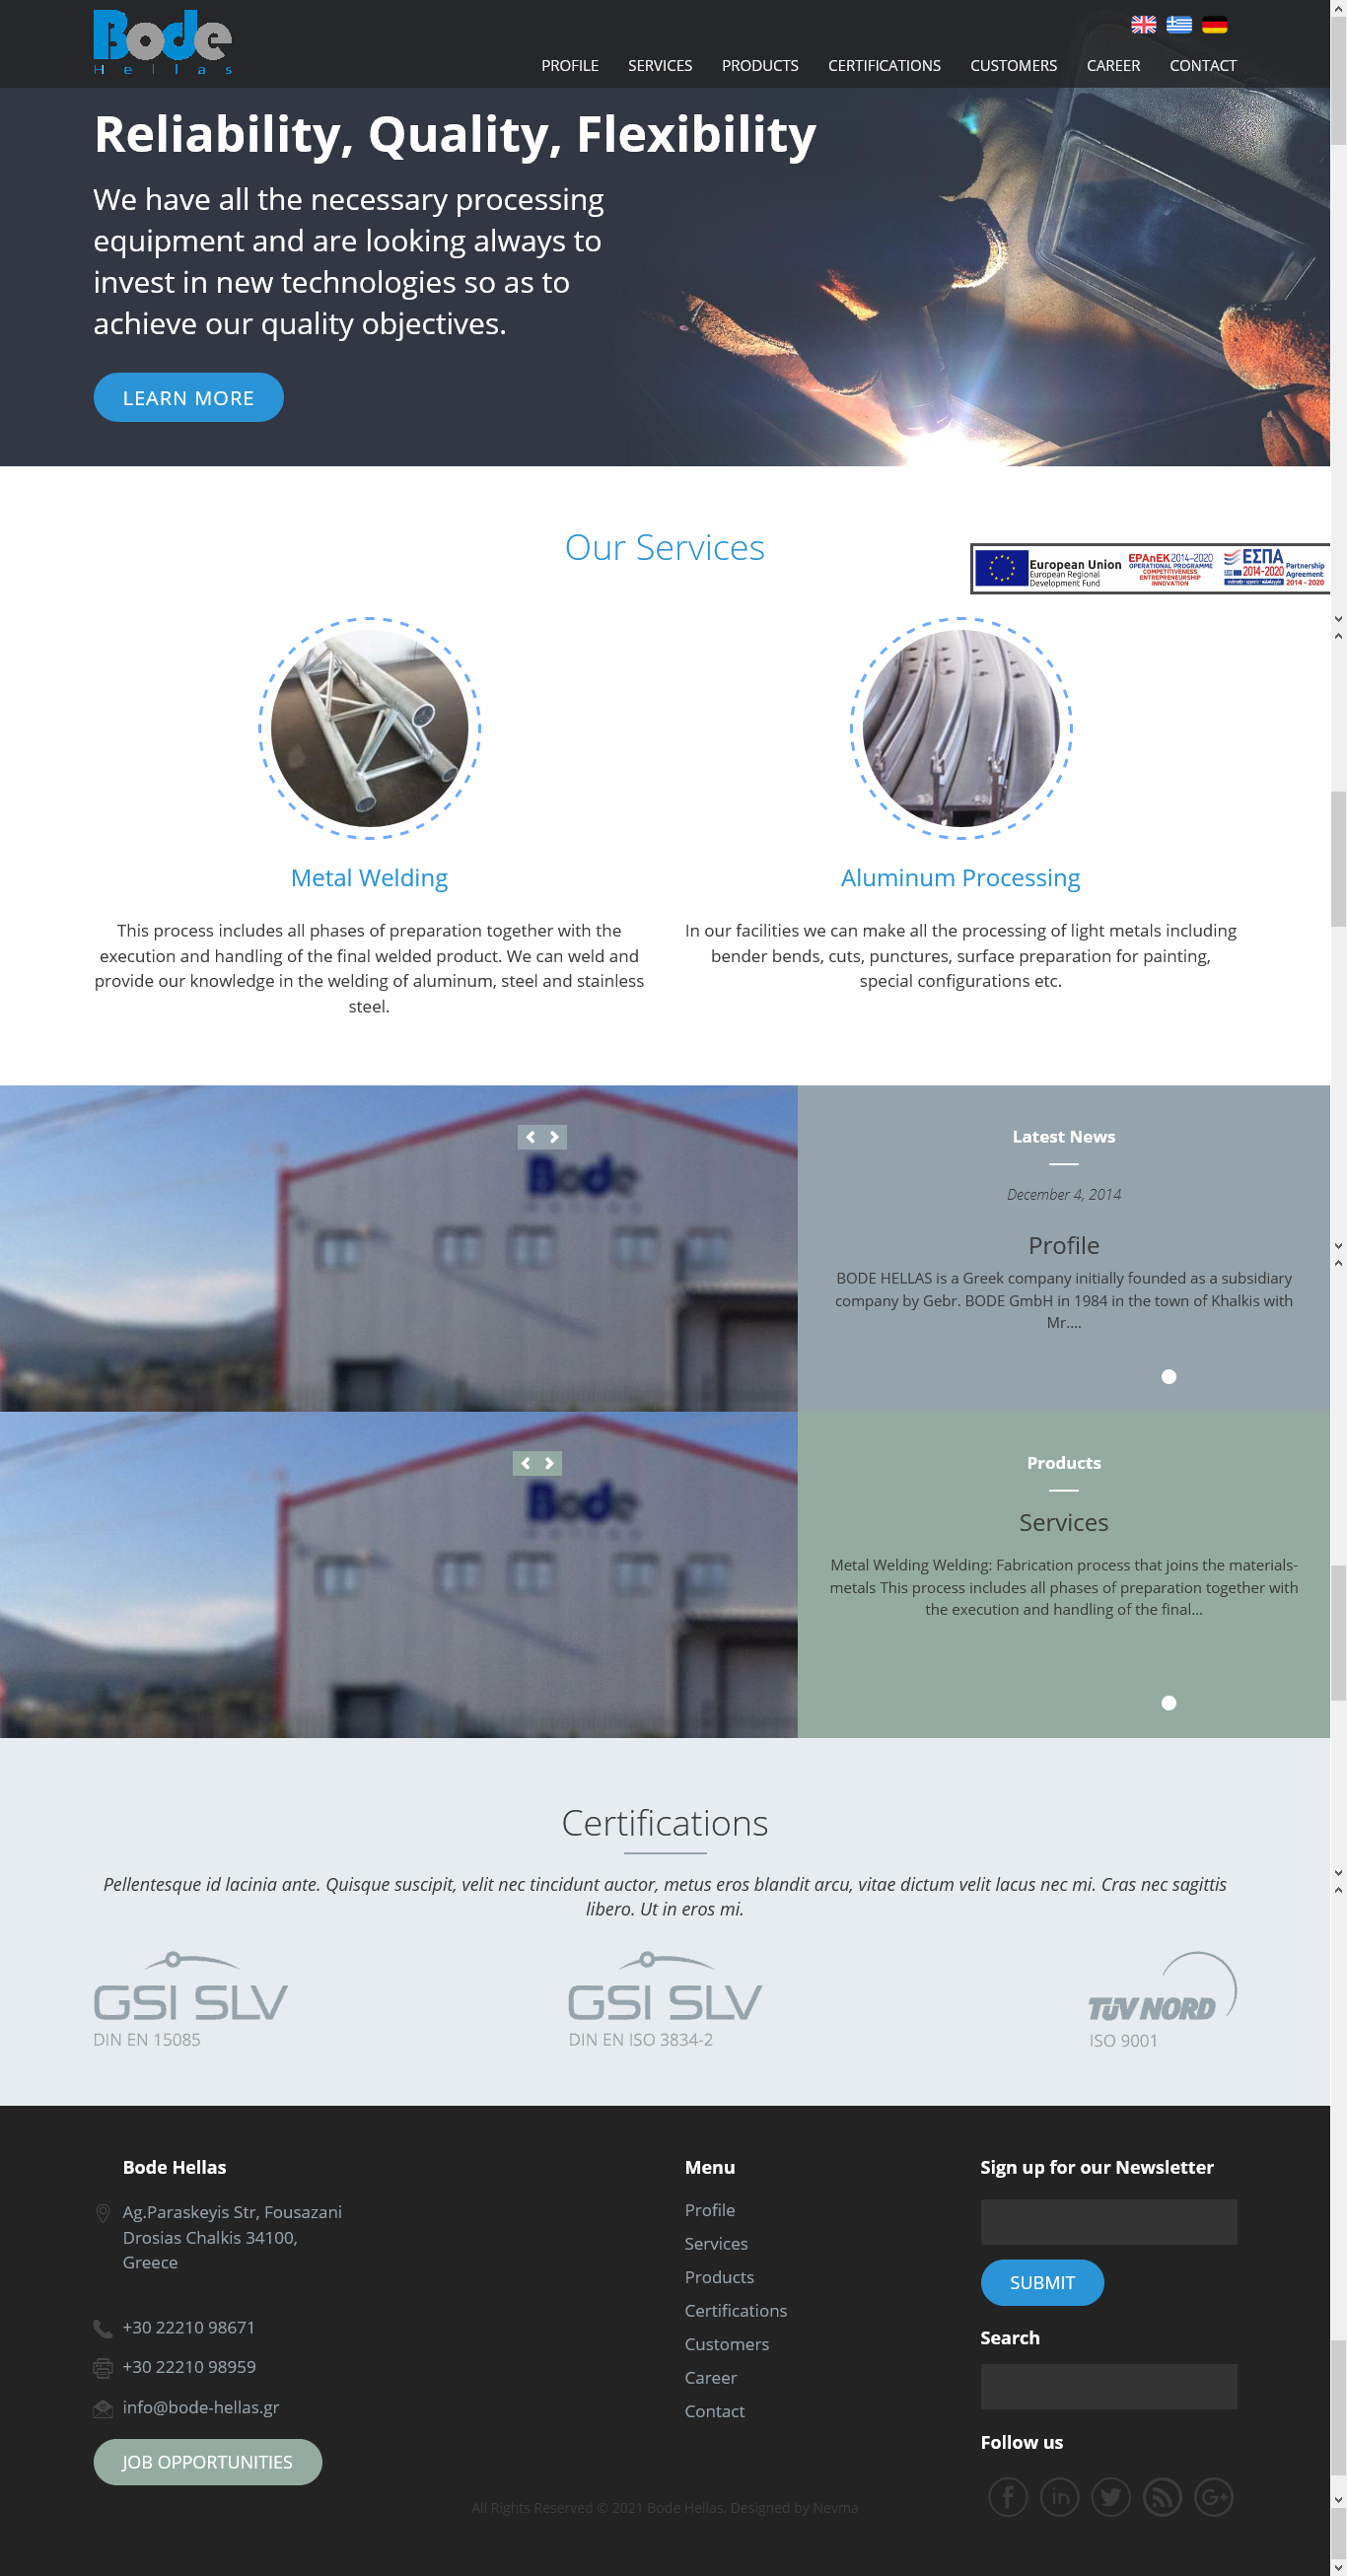 bode-website-1-1.png